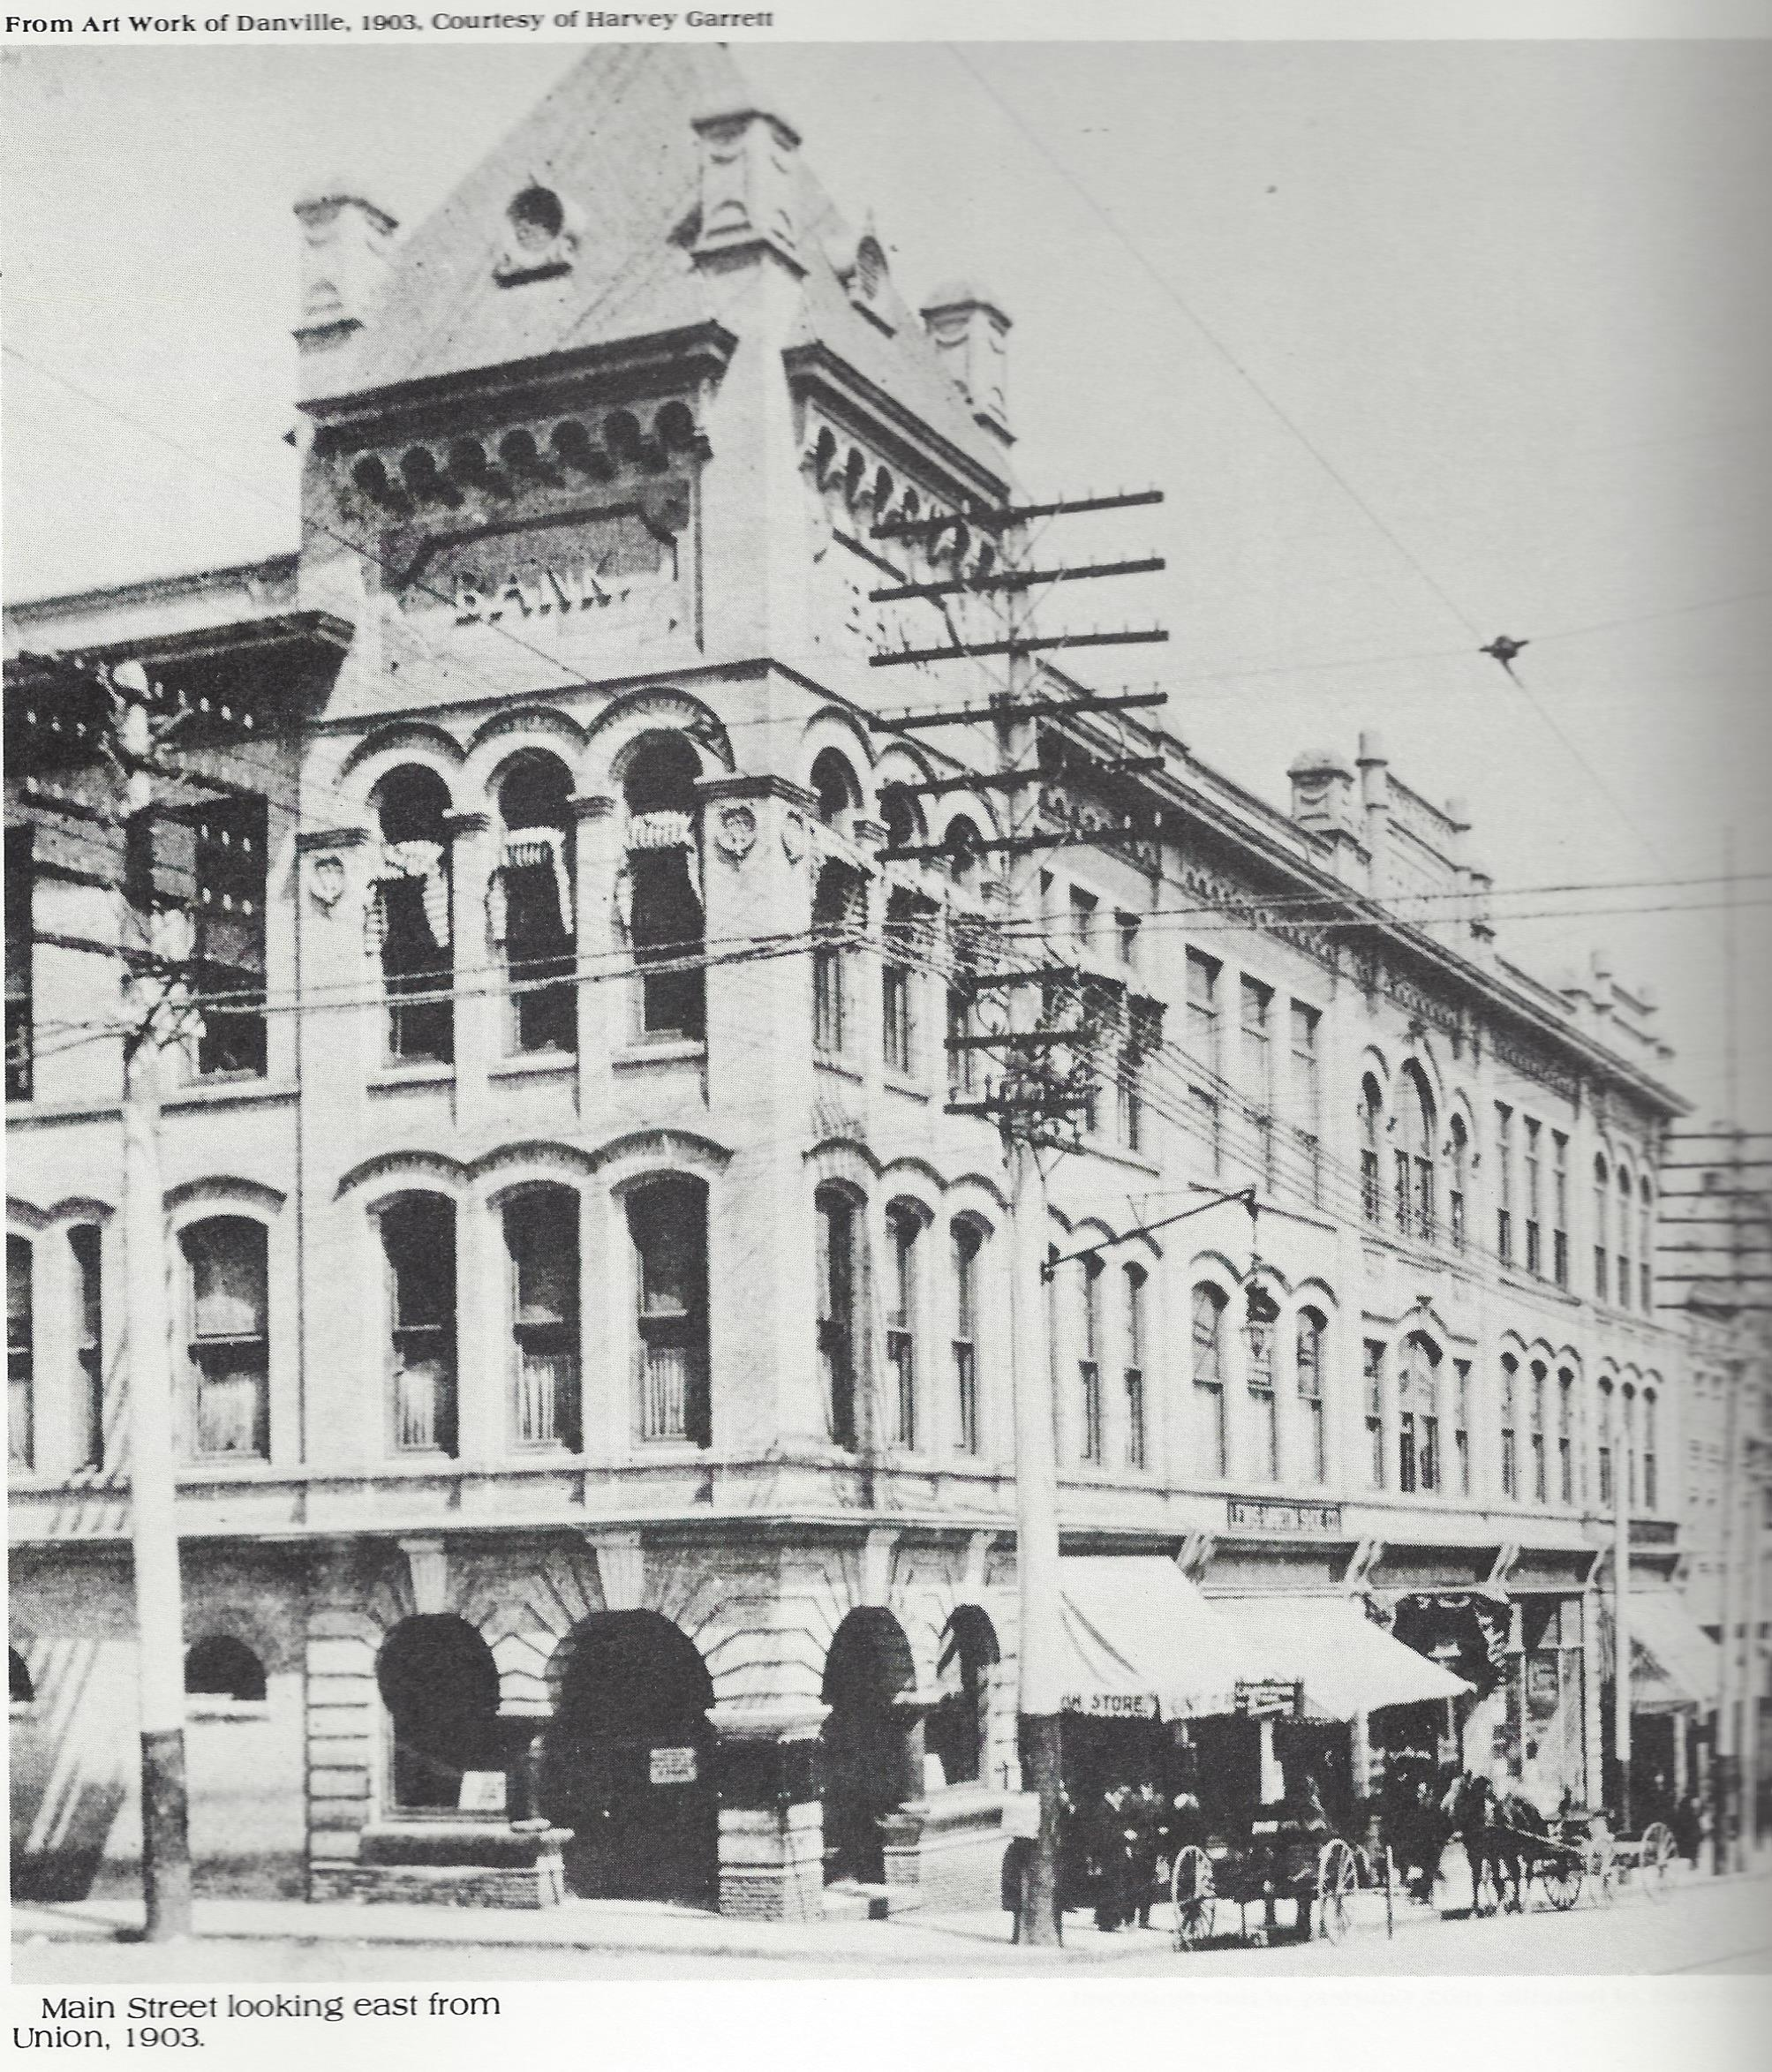 Beginning in 2015, this magnificent building (corner #1) is being renovated for multiple uses. The first tenant is the River District Association. The image is from a 1903 photograph.